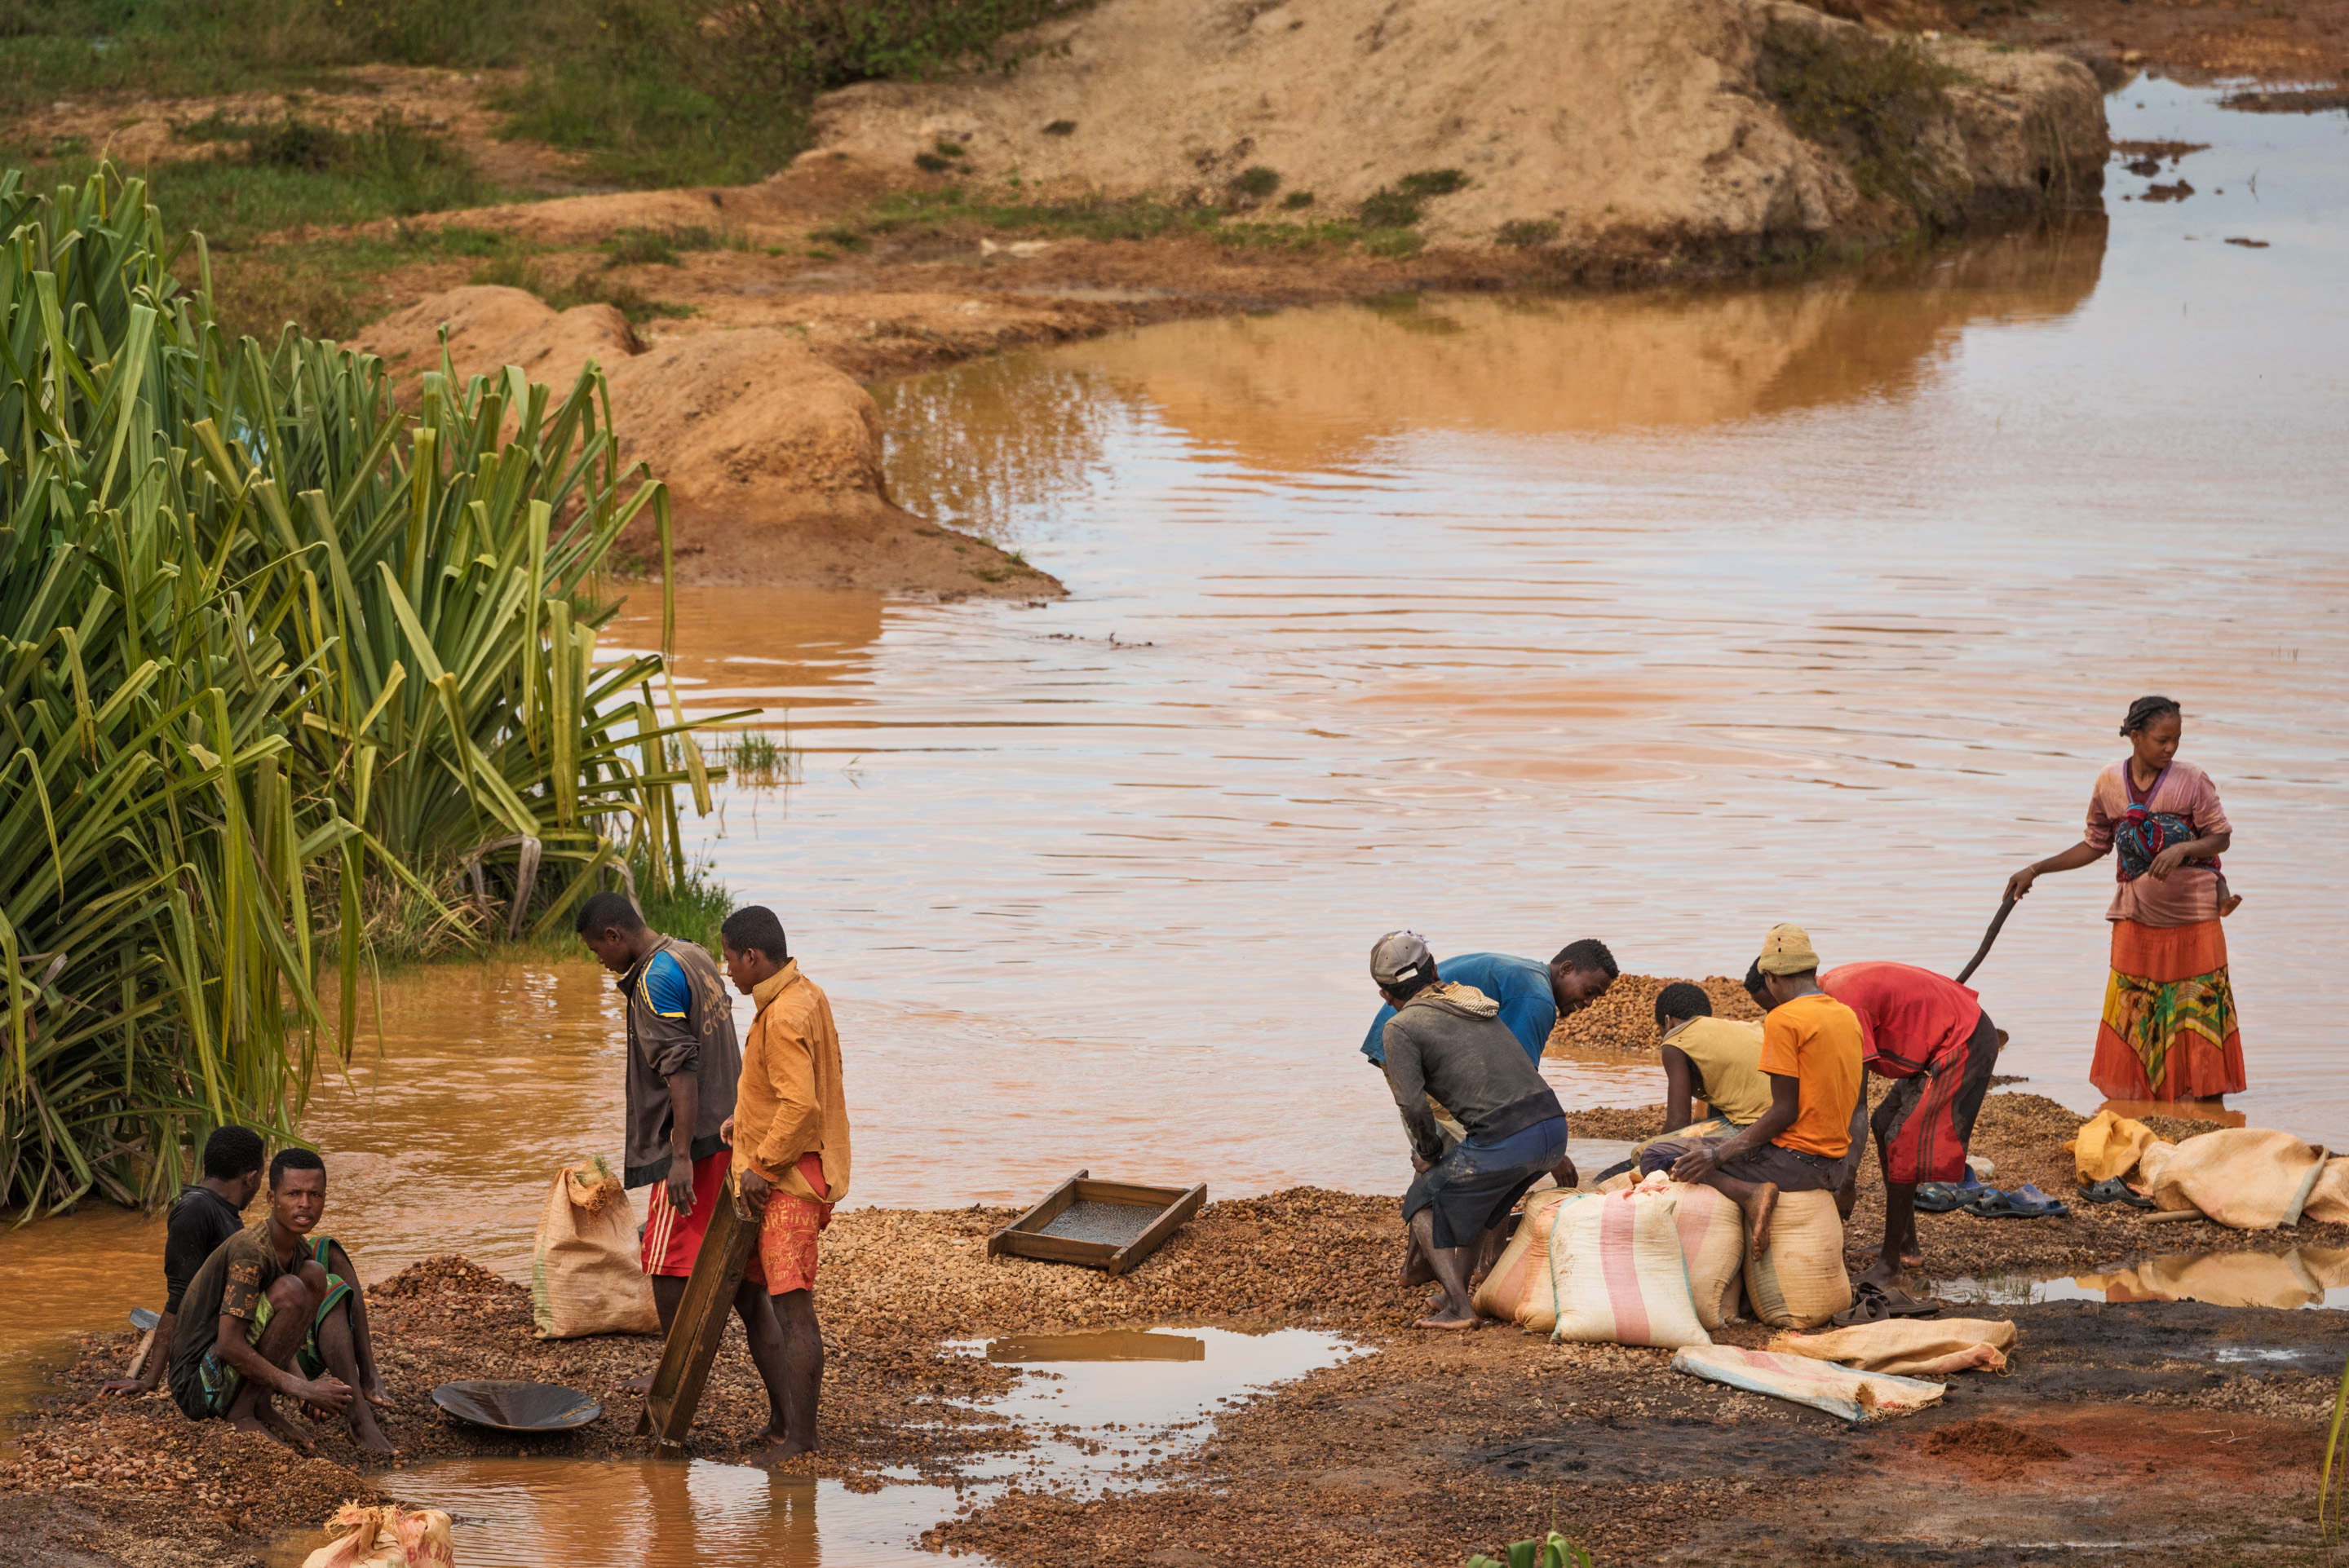 Panning for emeralds in a river in Isalo